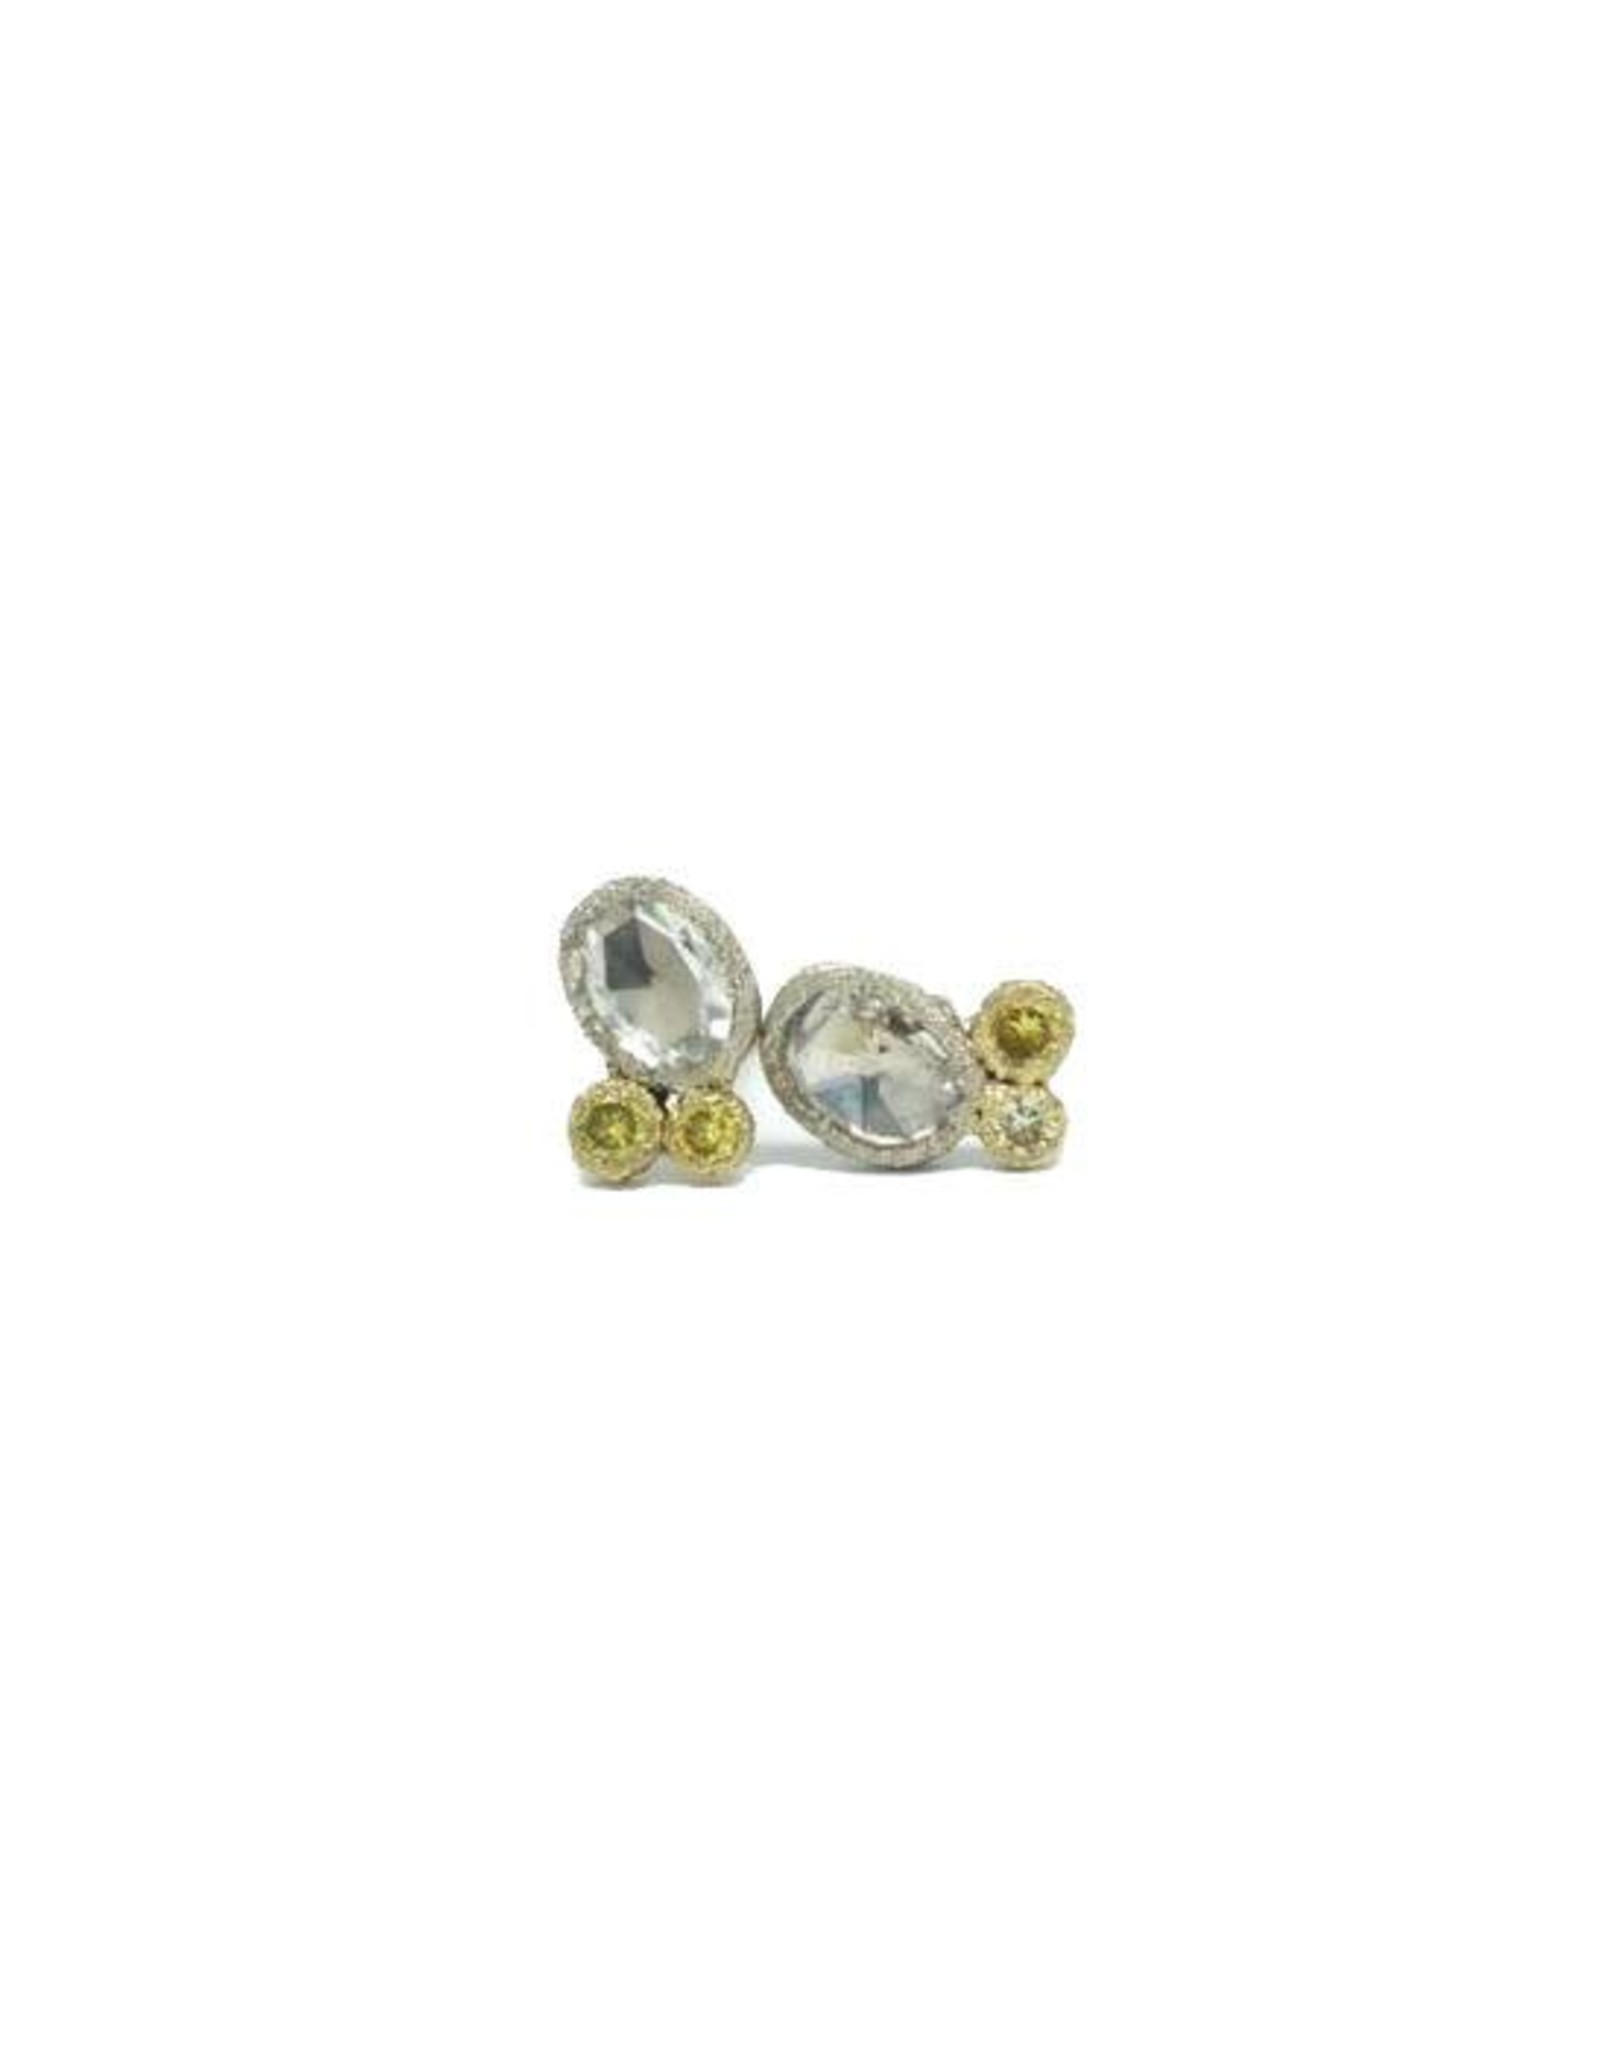 TAP by Todd Pownell Bezel Set Oval Rose Cut and Yellow Diamond Studs